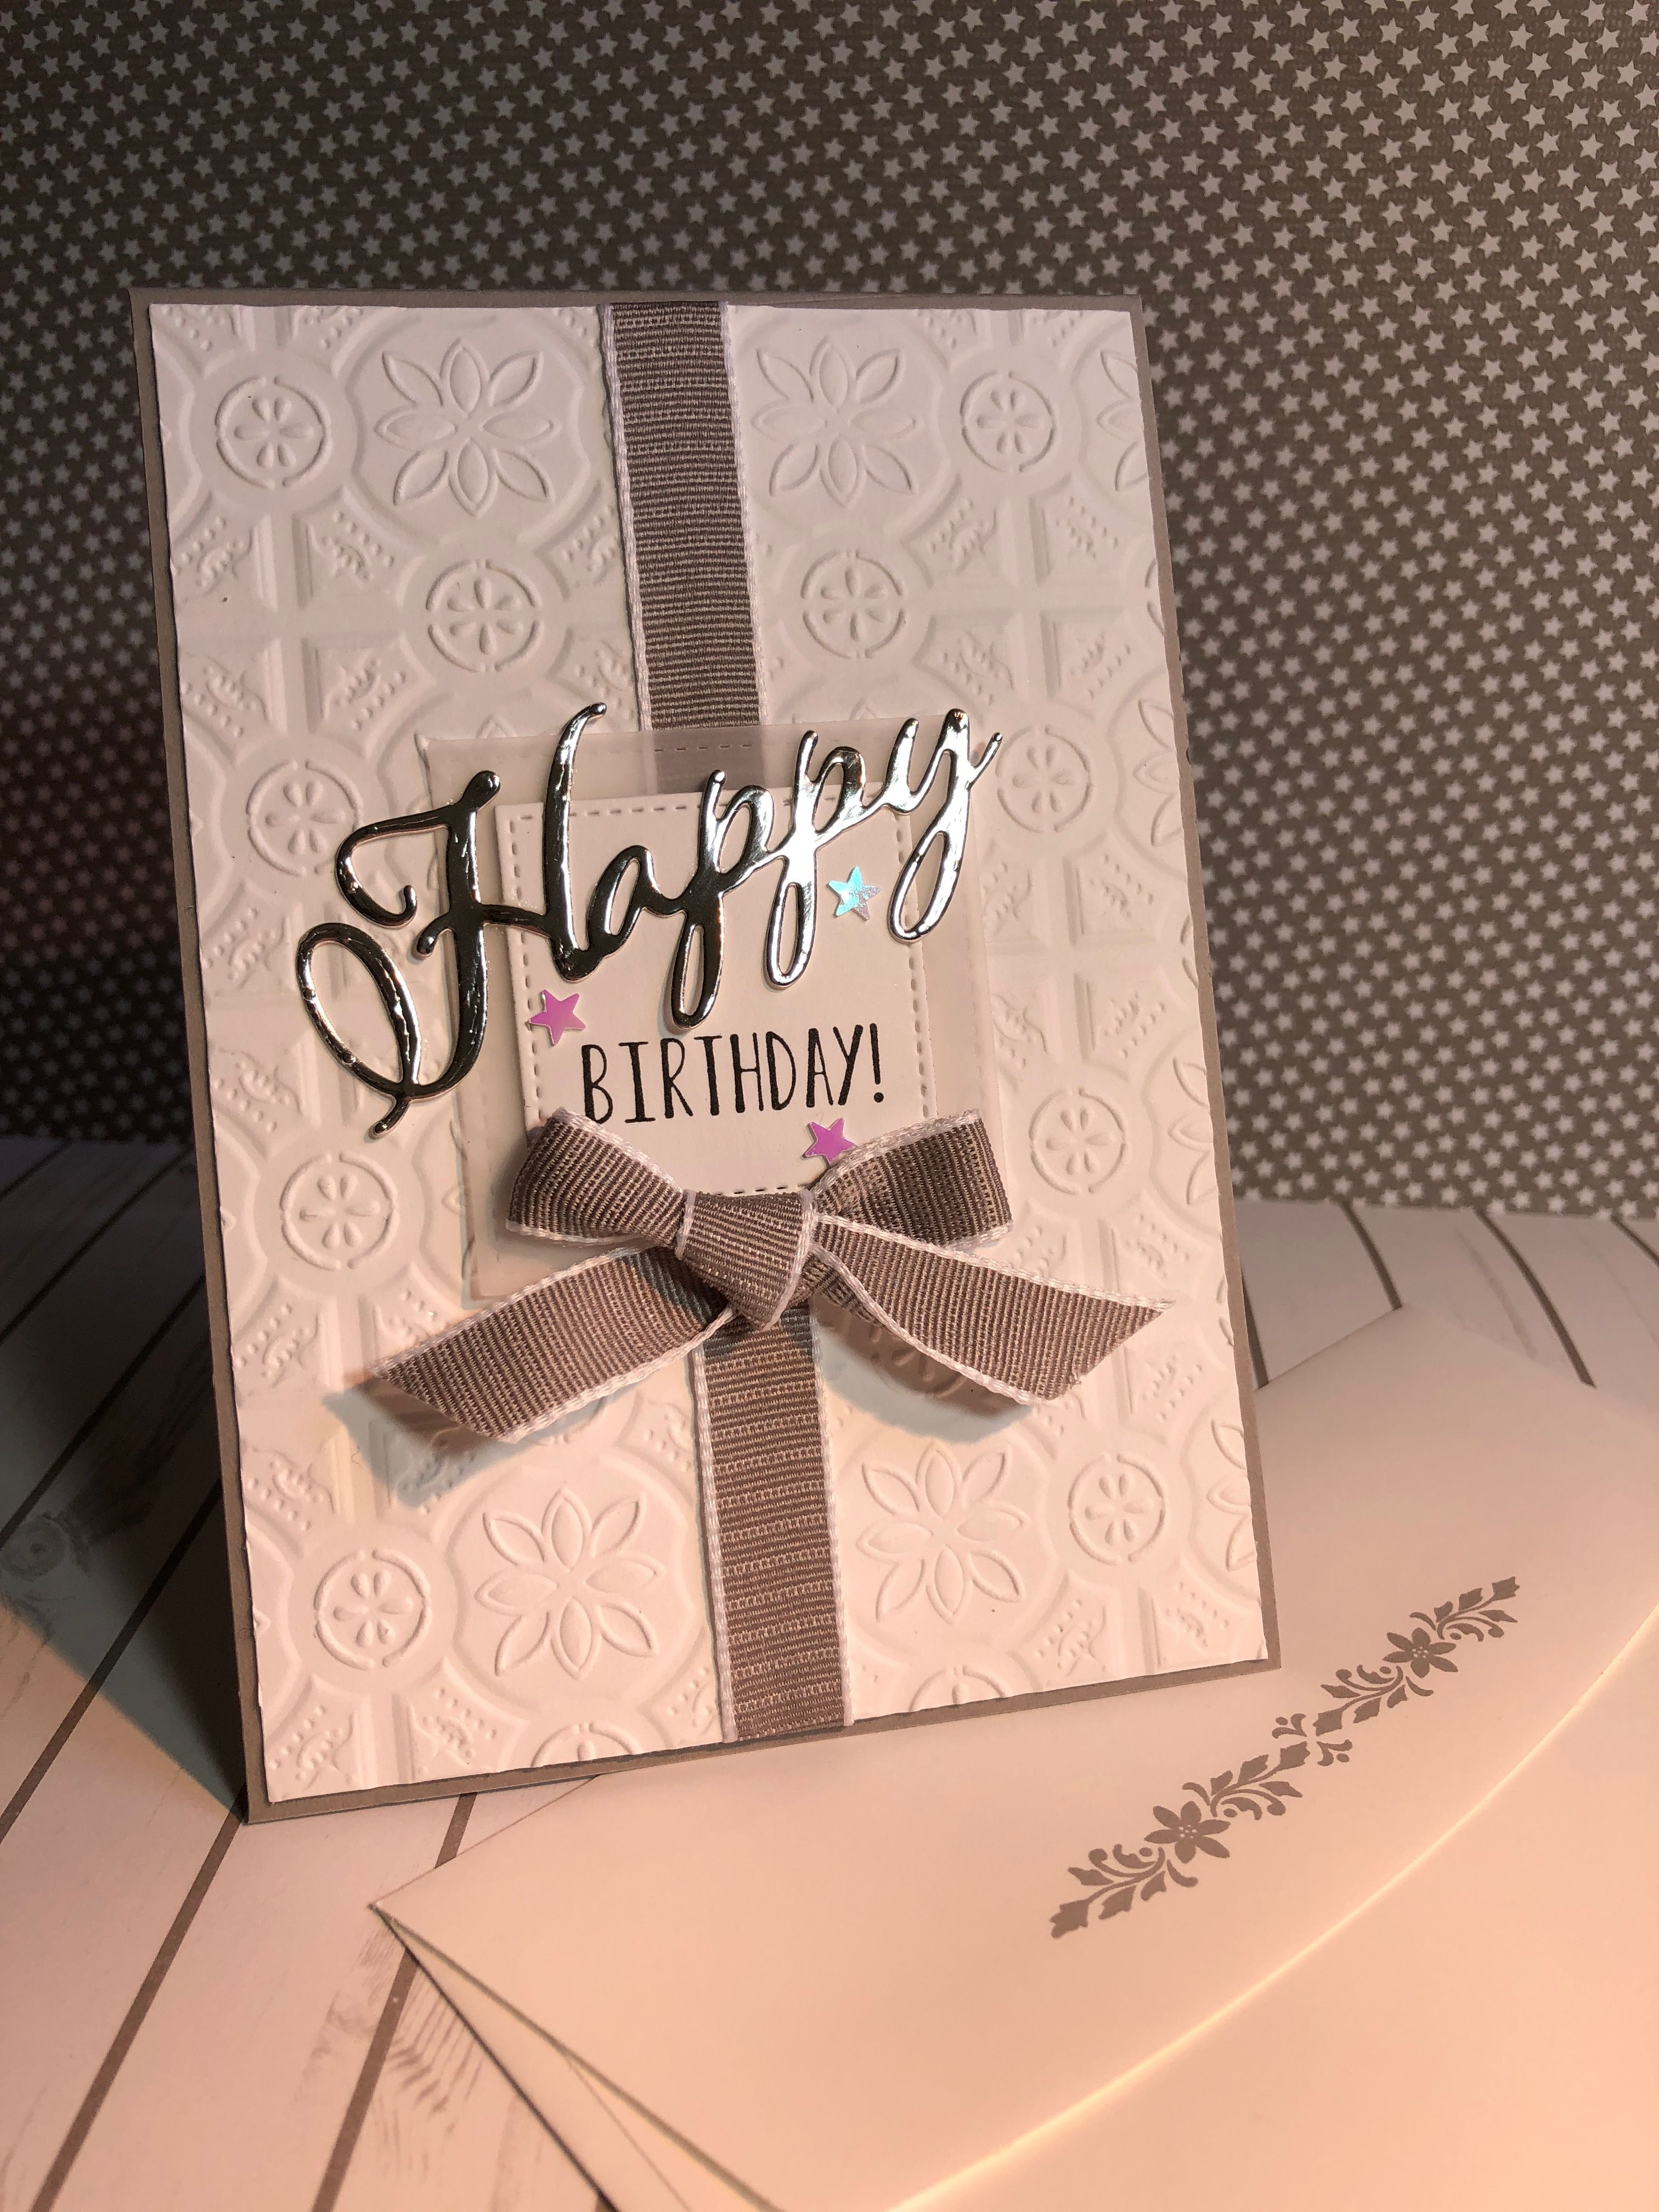 Pin by jeanne barnes on card ideas pinterest cards birthday